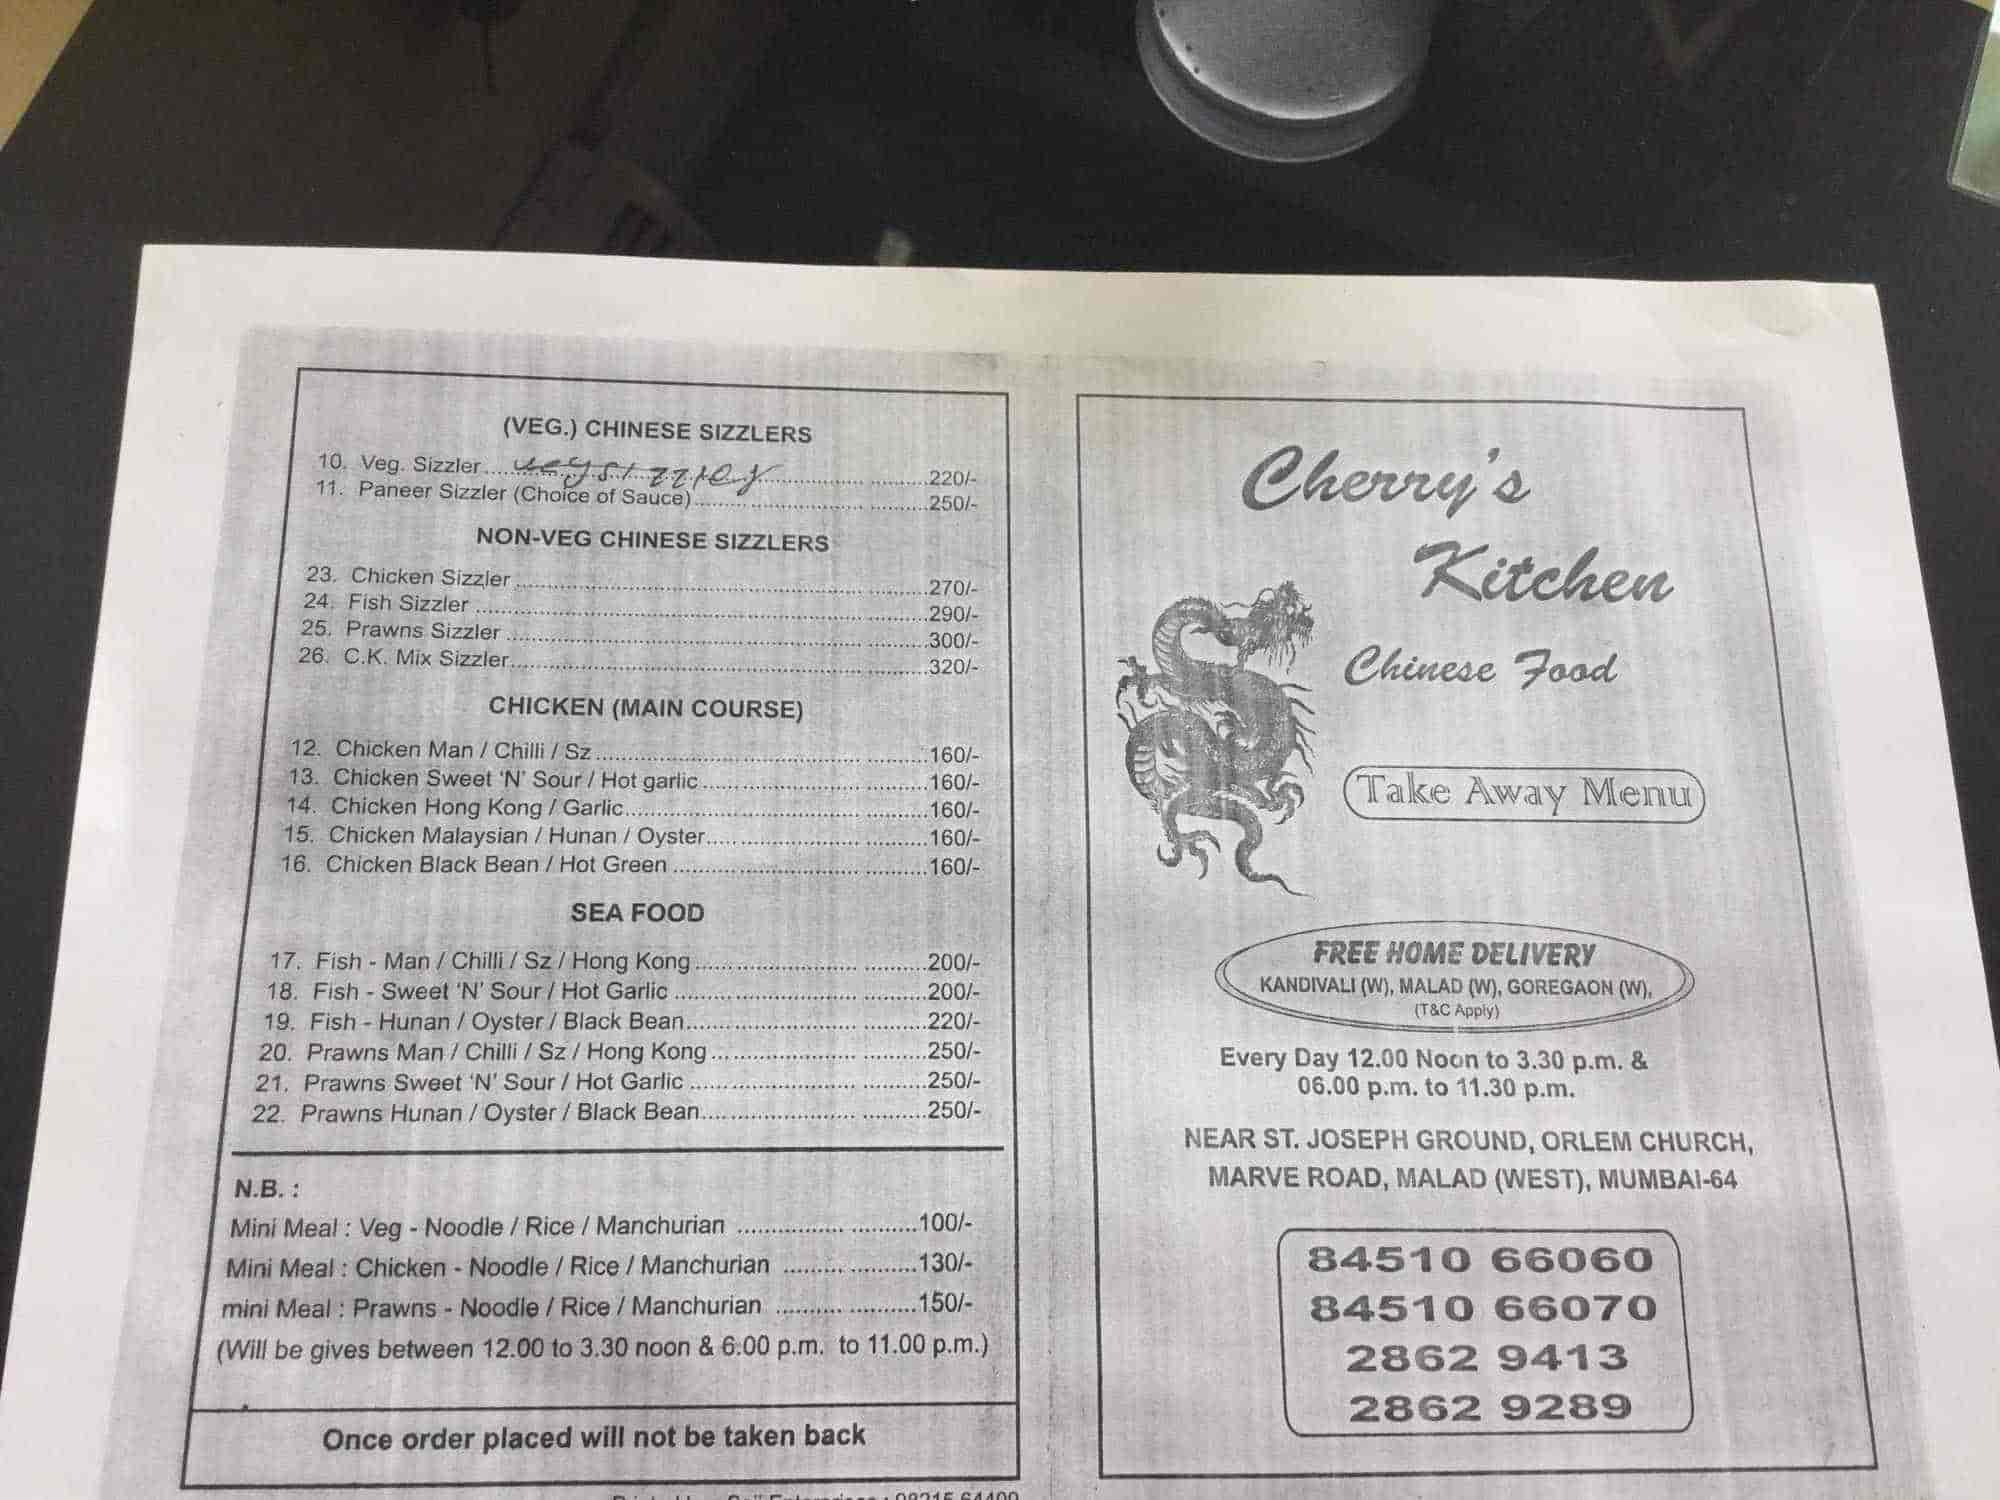 Cherrys Kitchen, Orlem-Malad West, Mumbai - Food Menu Card - Justdial